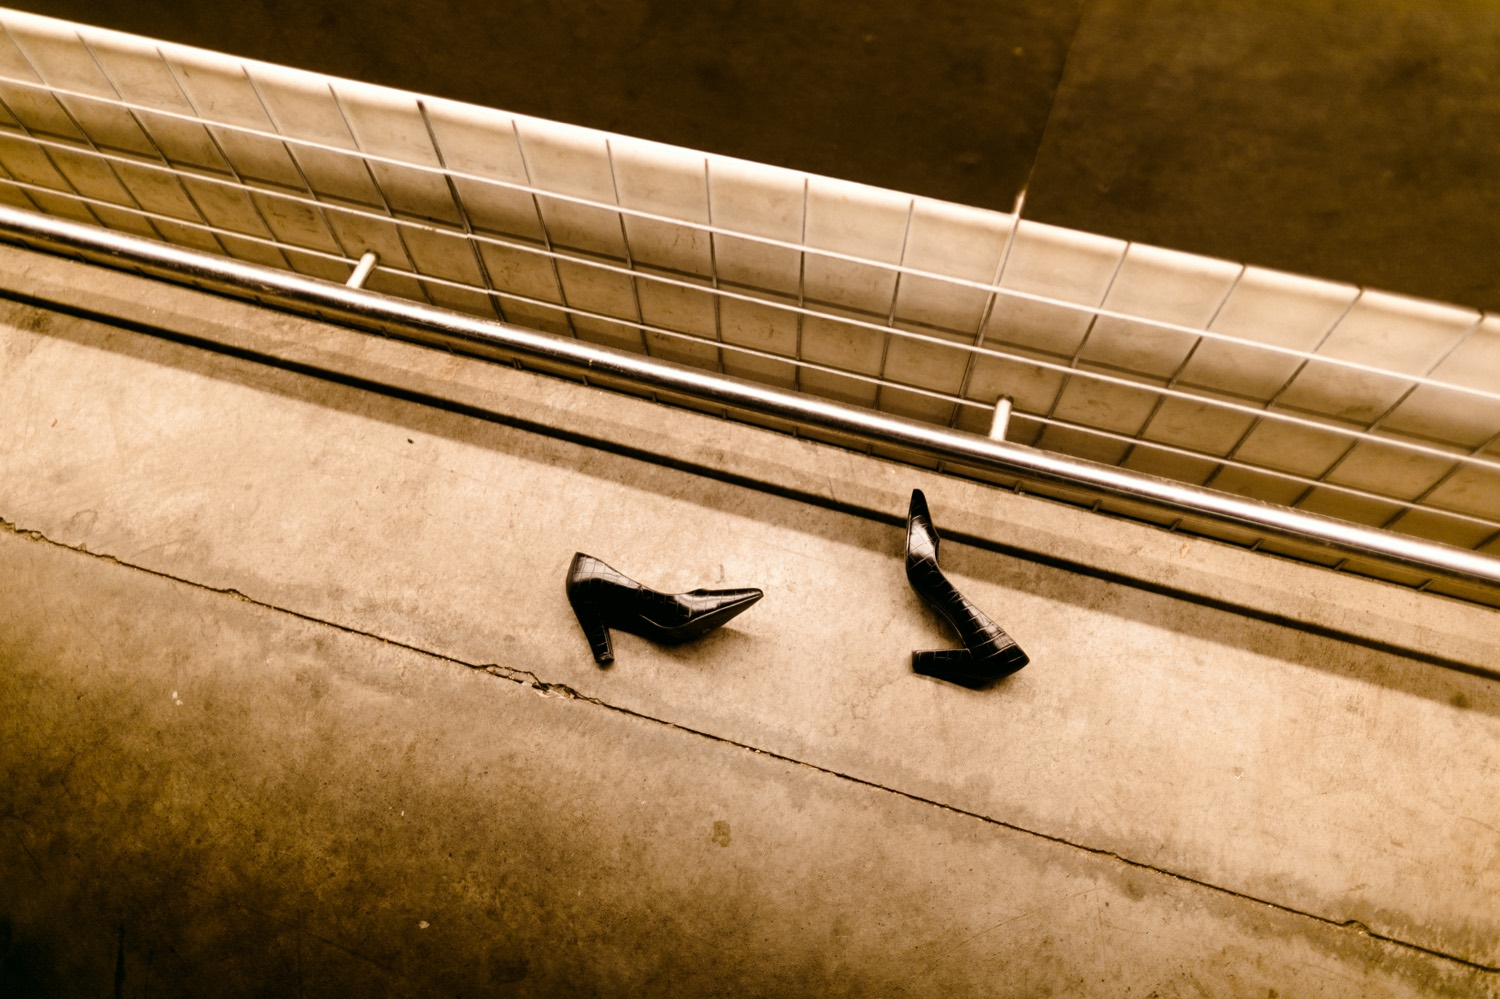 pair of shoes left behind on the dancefloor